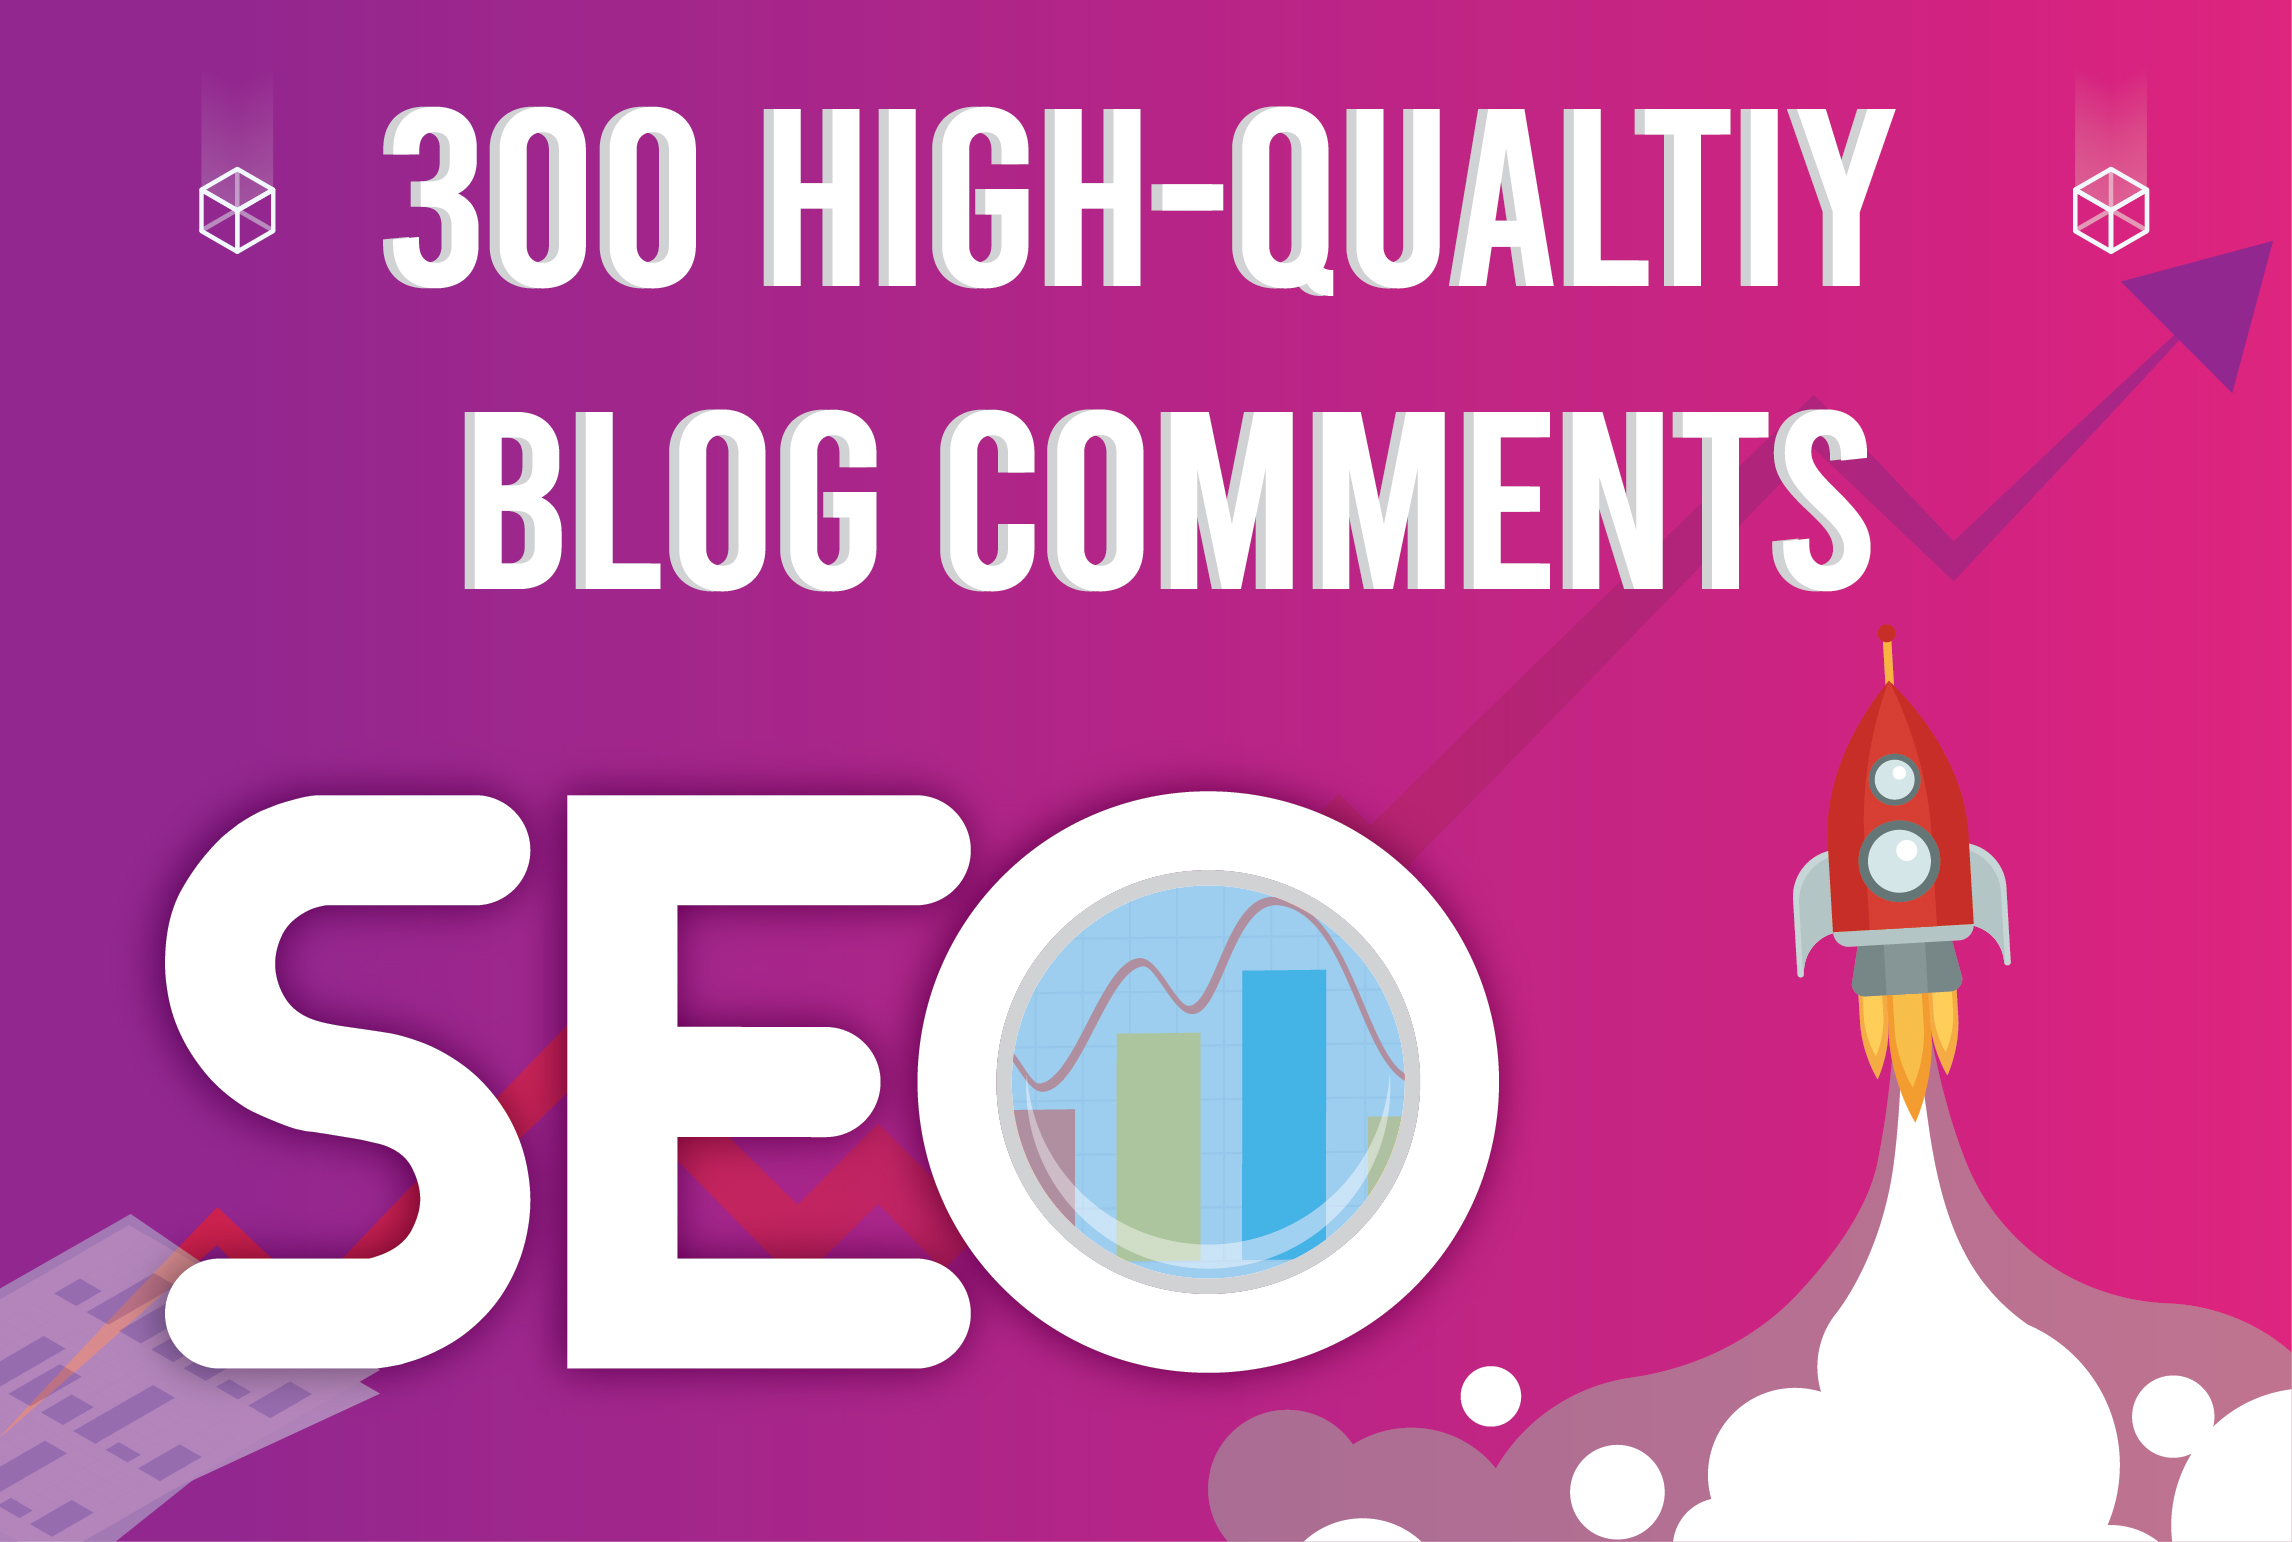 I will create 300 high quality blog comments